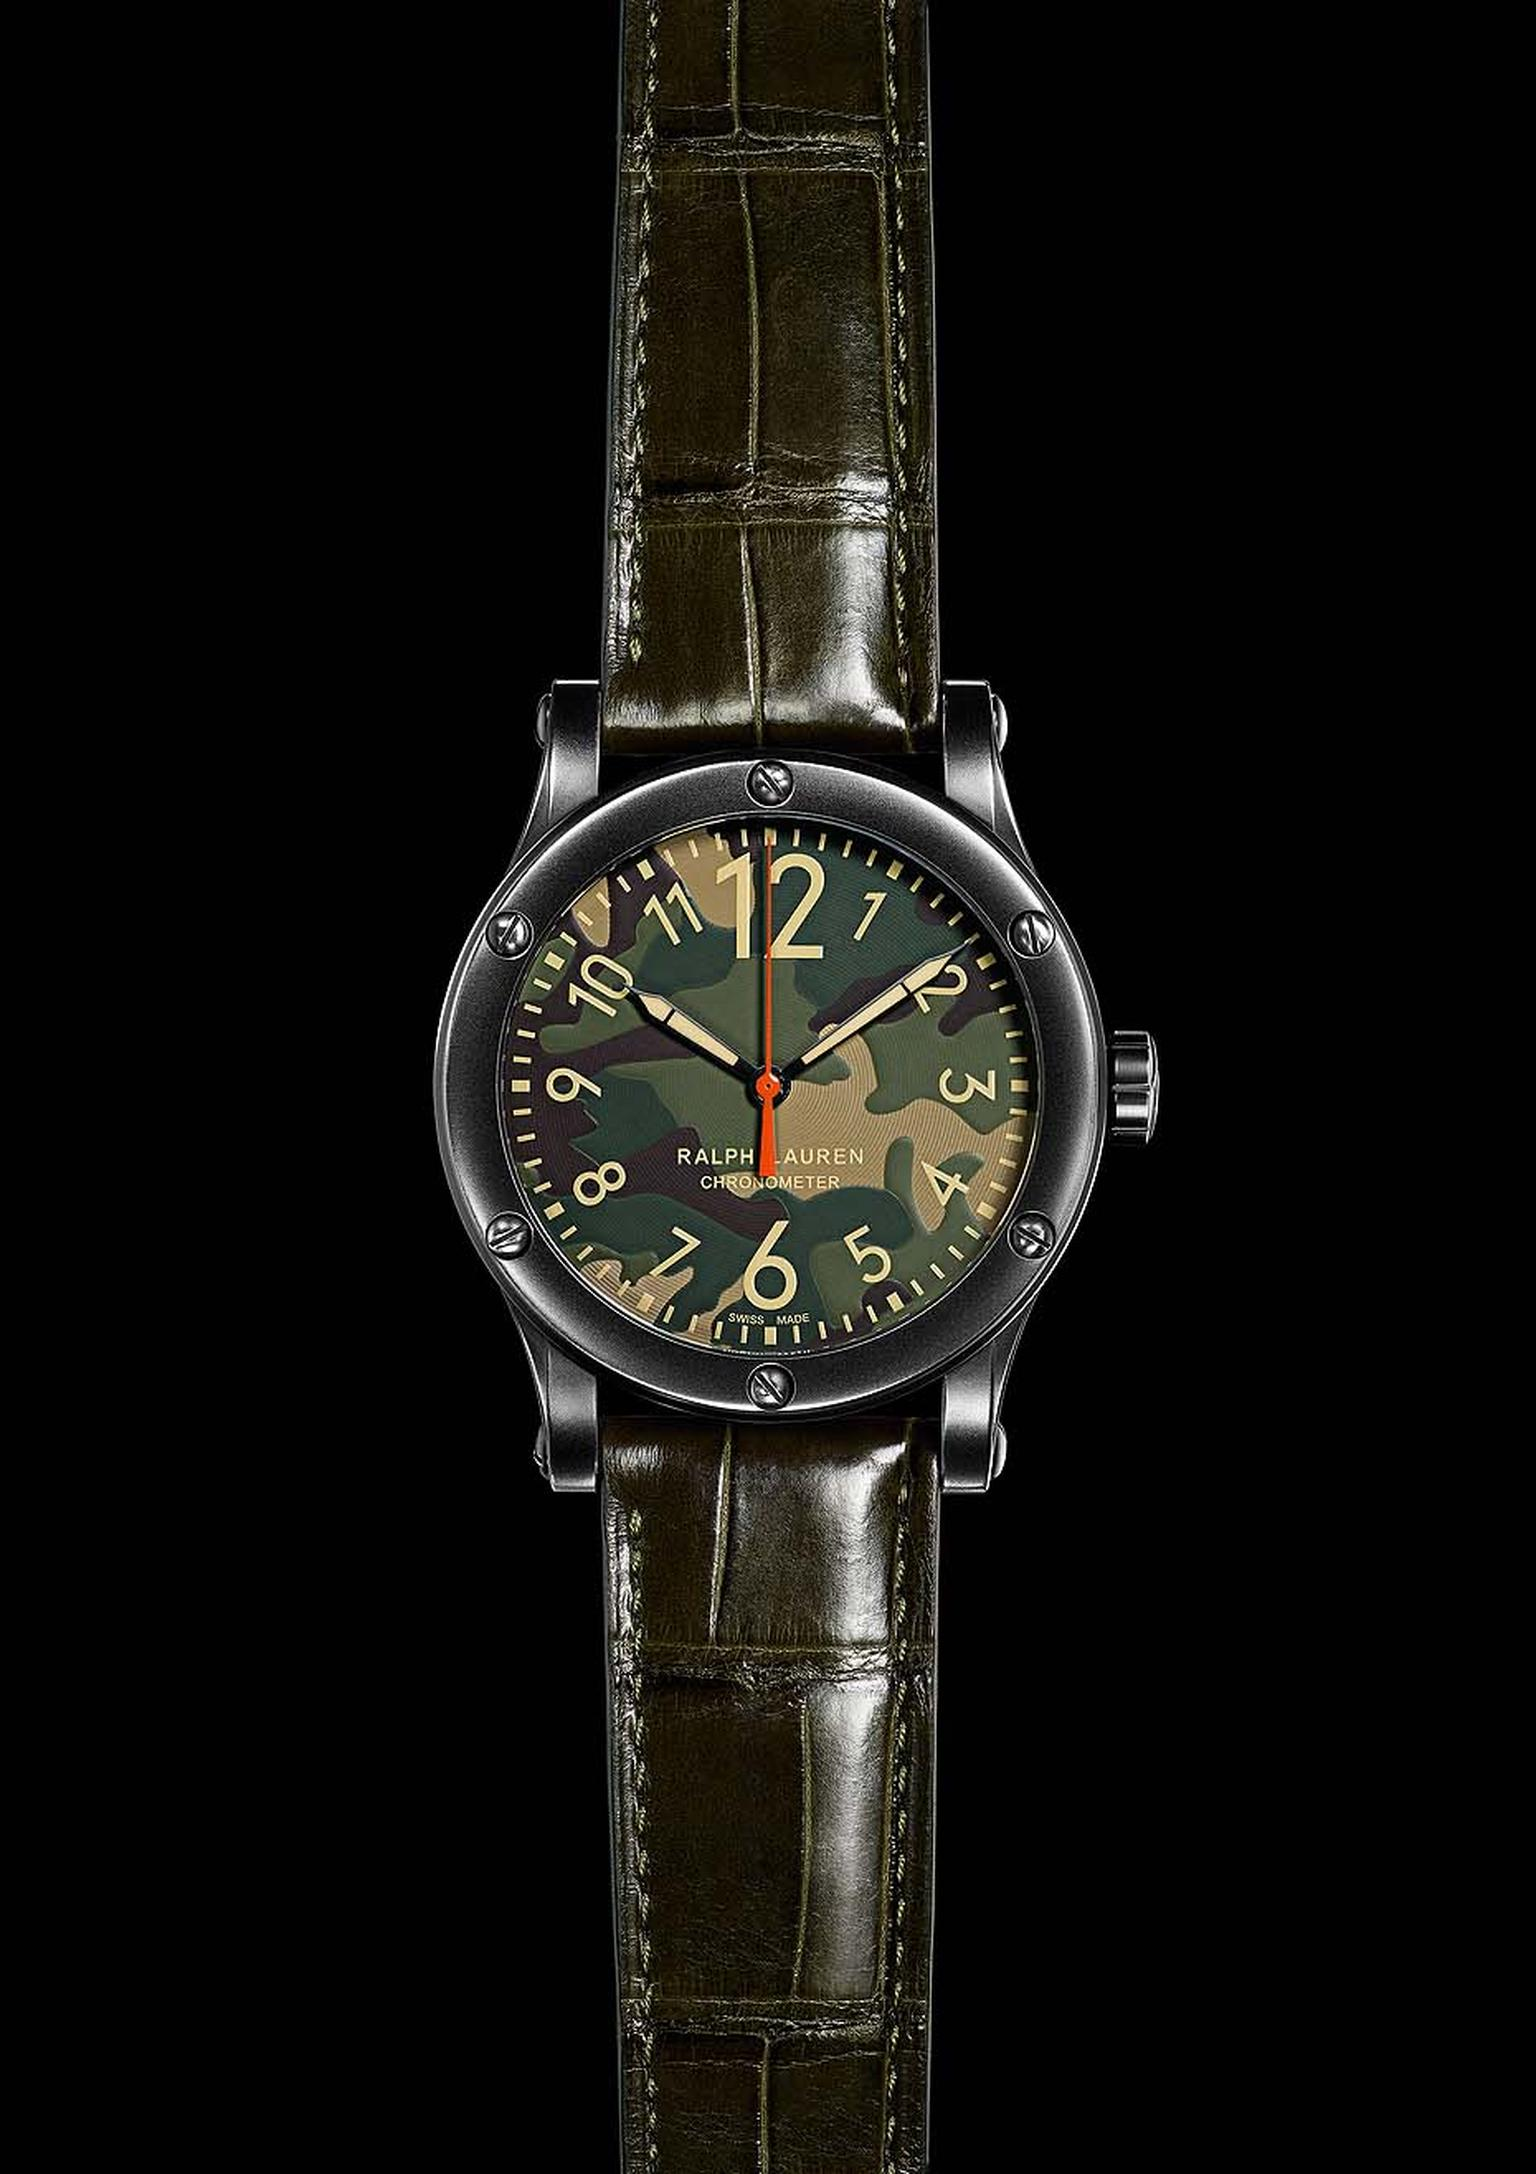 Ralph Lauren watch_Safari_Cami Chronomoter.jpg